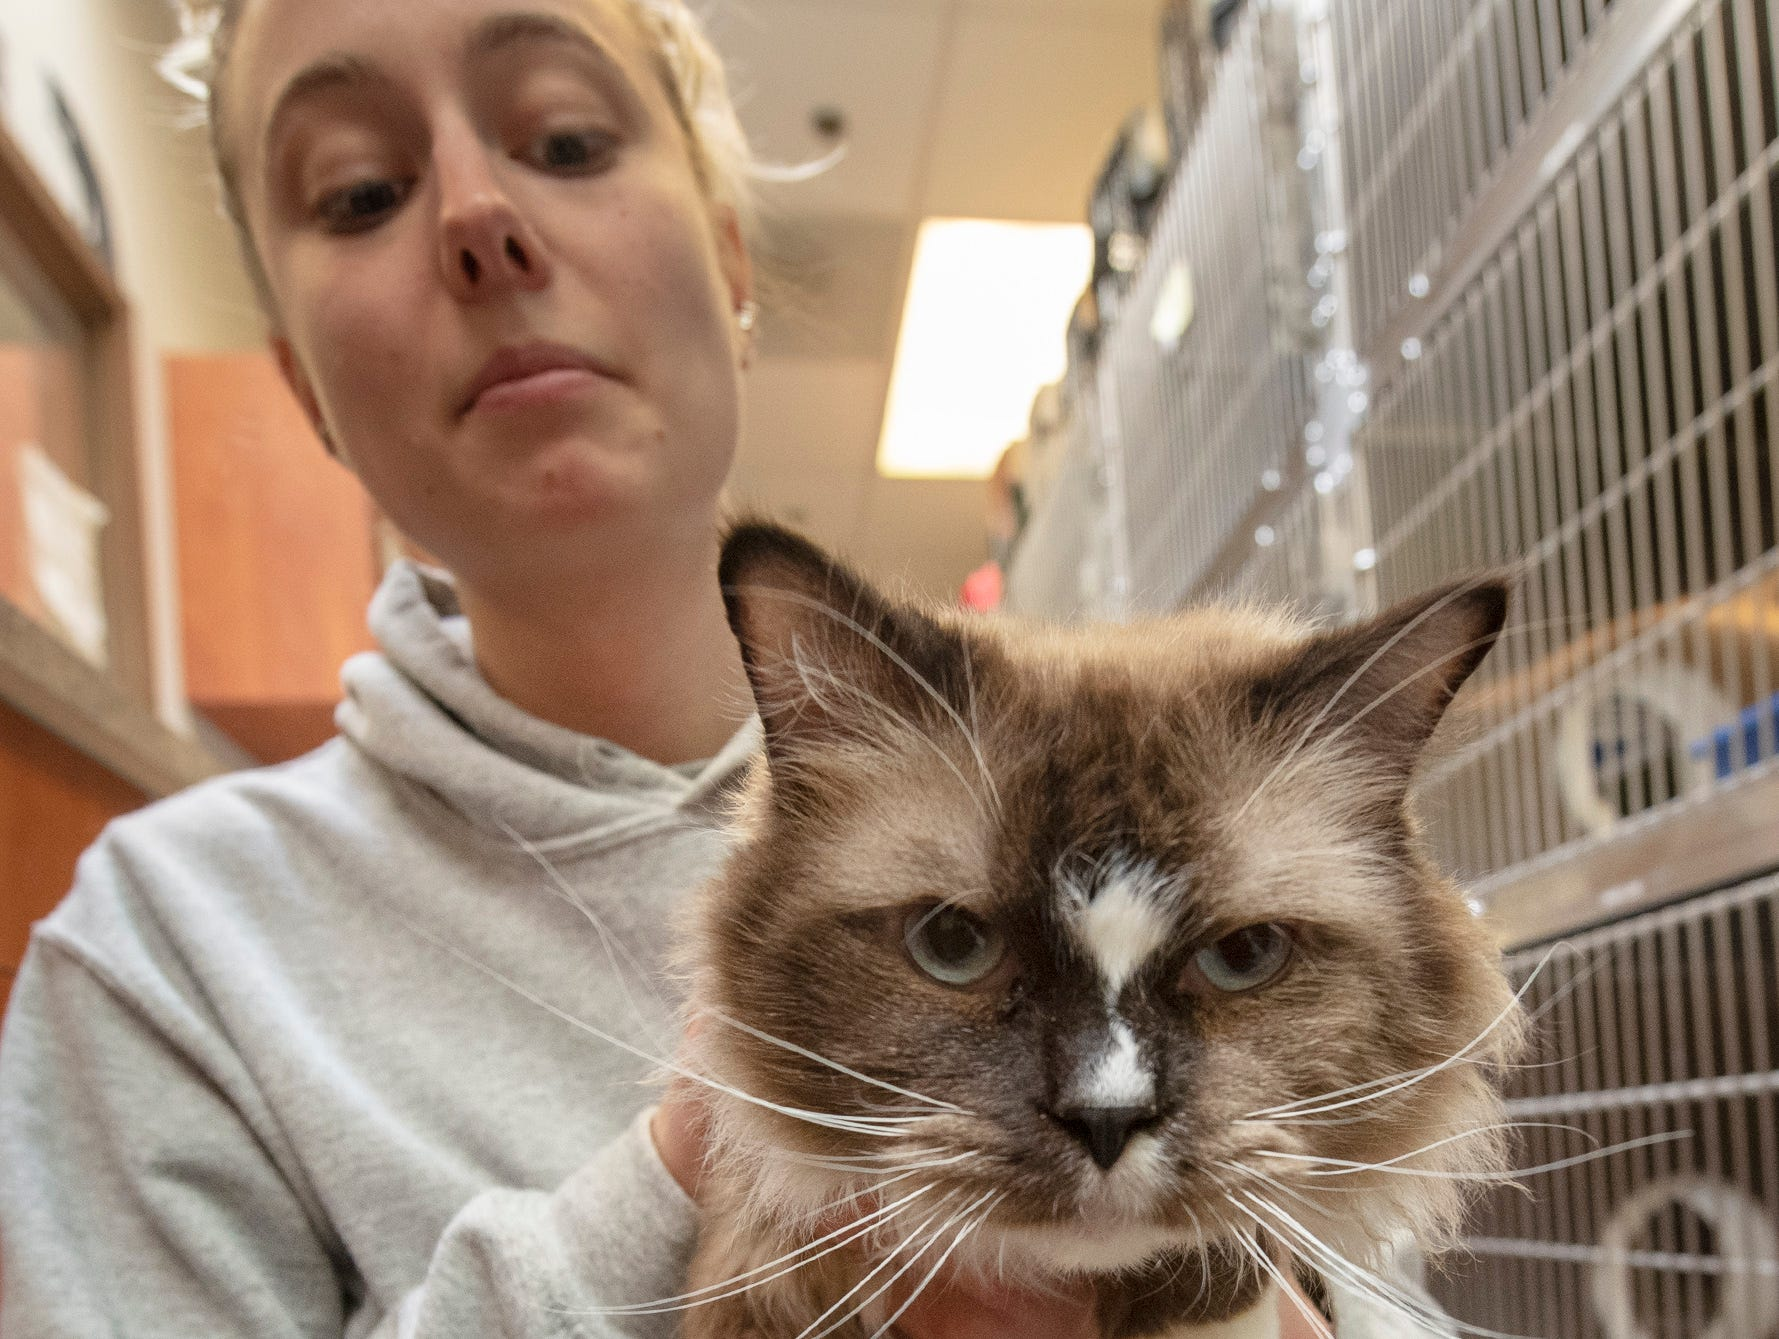 My name is Mr. Hypotenuse. I'm a 5 year-old Himalayan who was found on Charles Street in Chanceford Township. I am very vocal and love to play and cuddle.